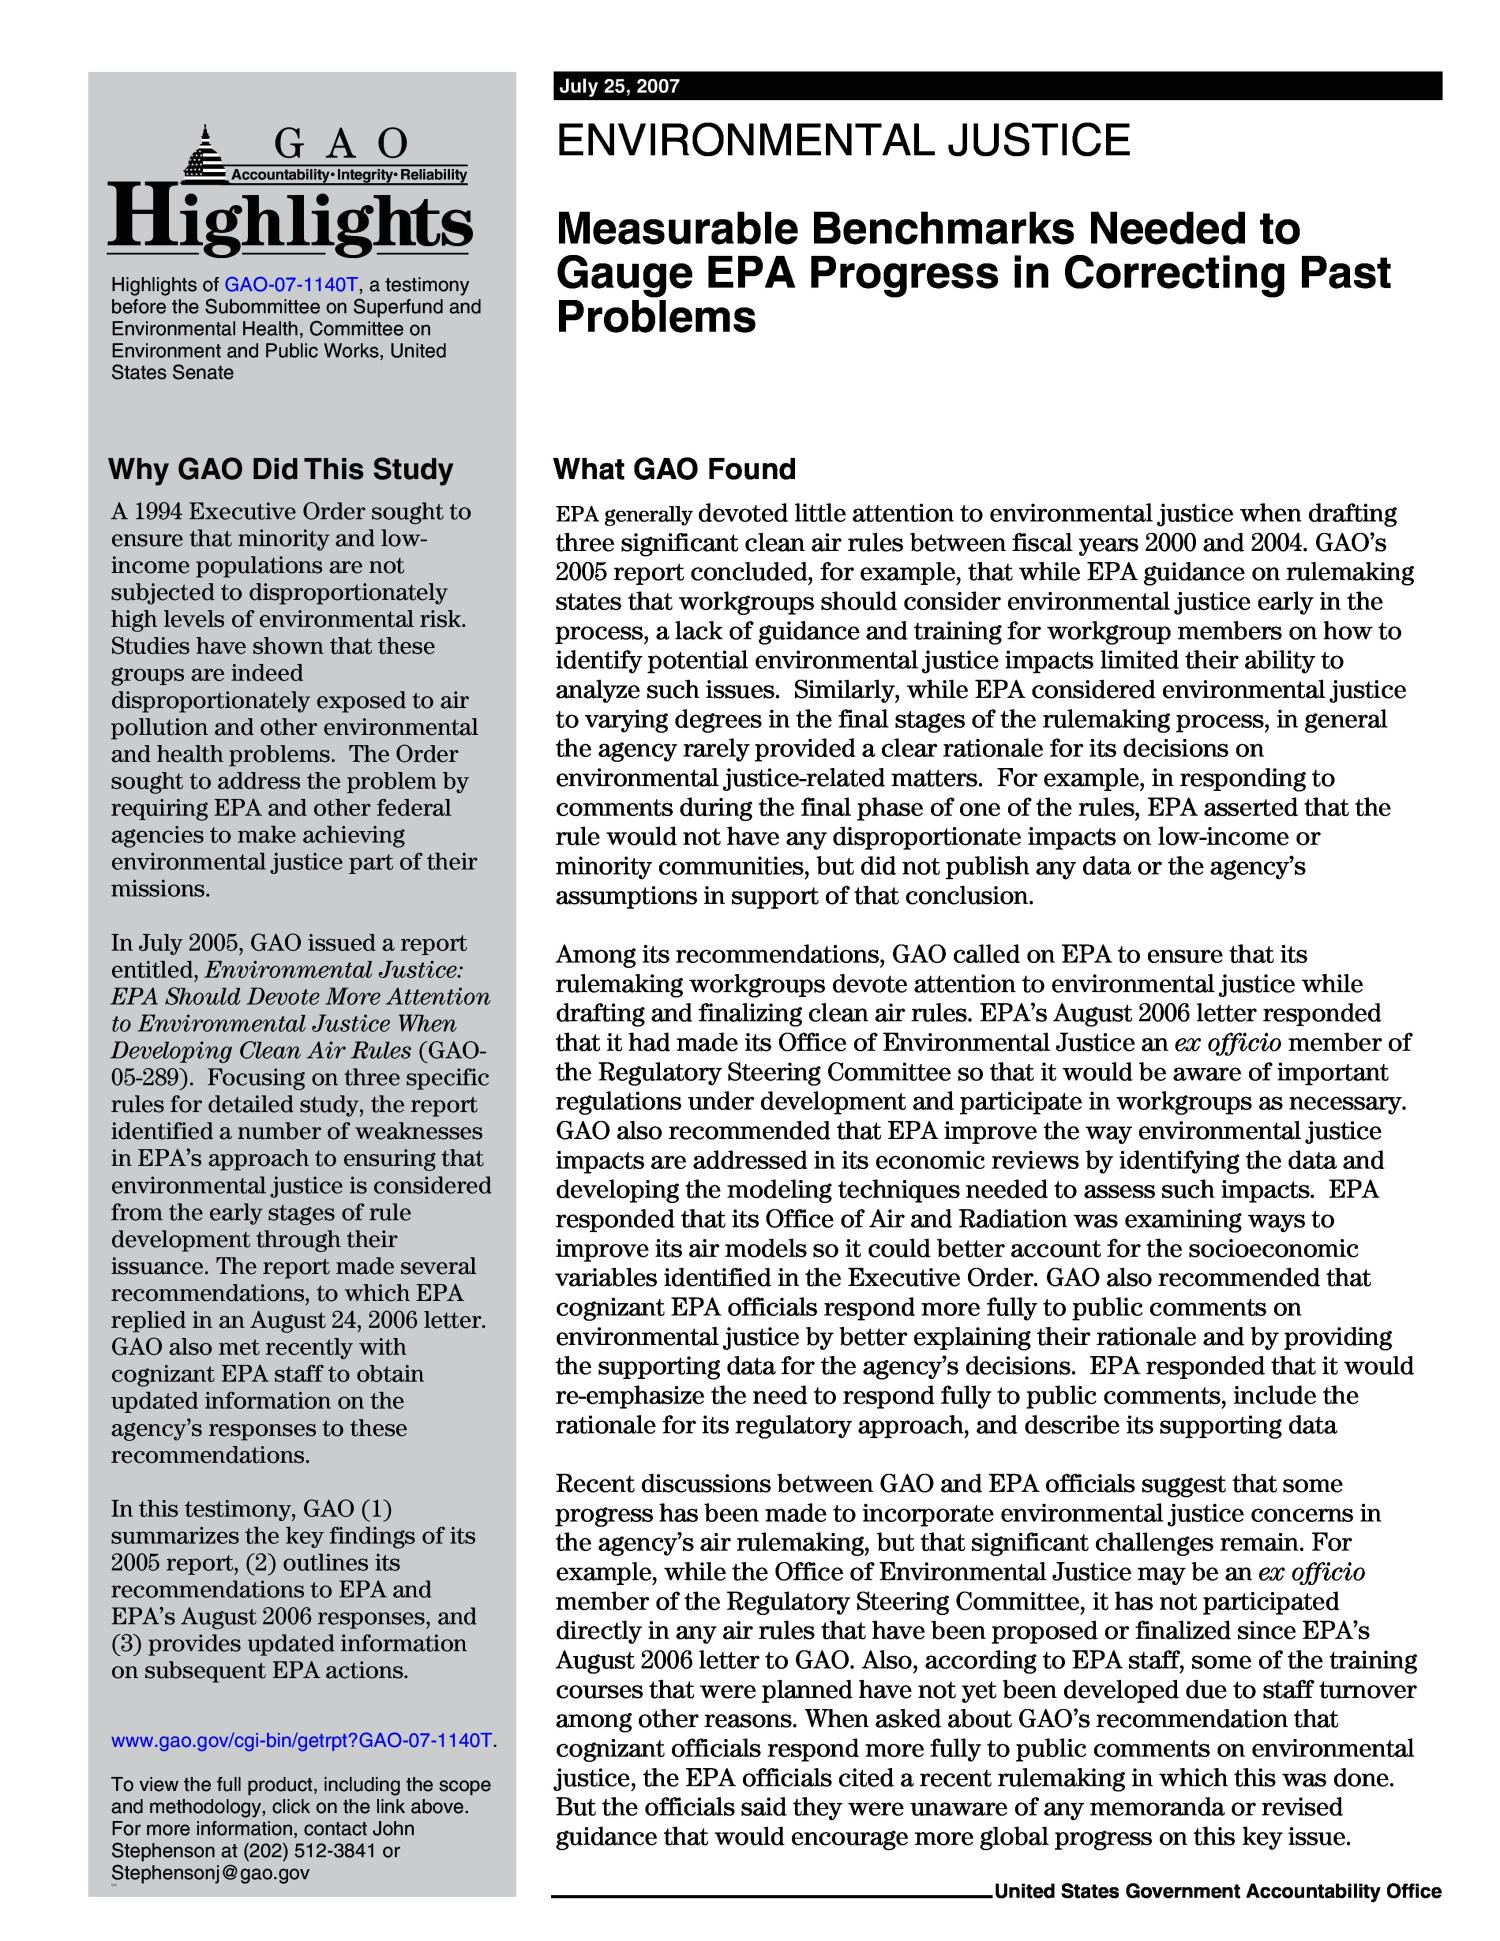 Environmental Justice: Measurable Benchmarks Needed to Gauge EPA Progress in Correcting Past Problems                                                                                                      [Sequence #]: 2 of 17